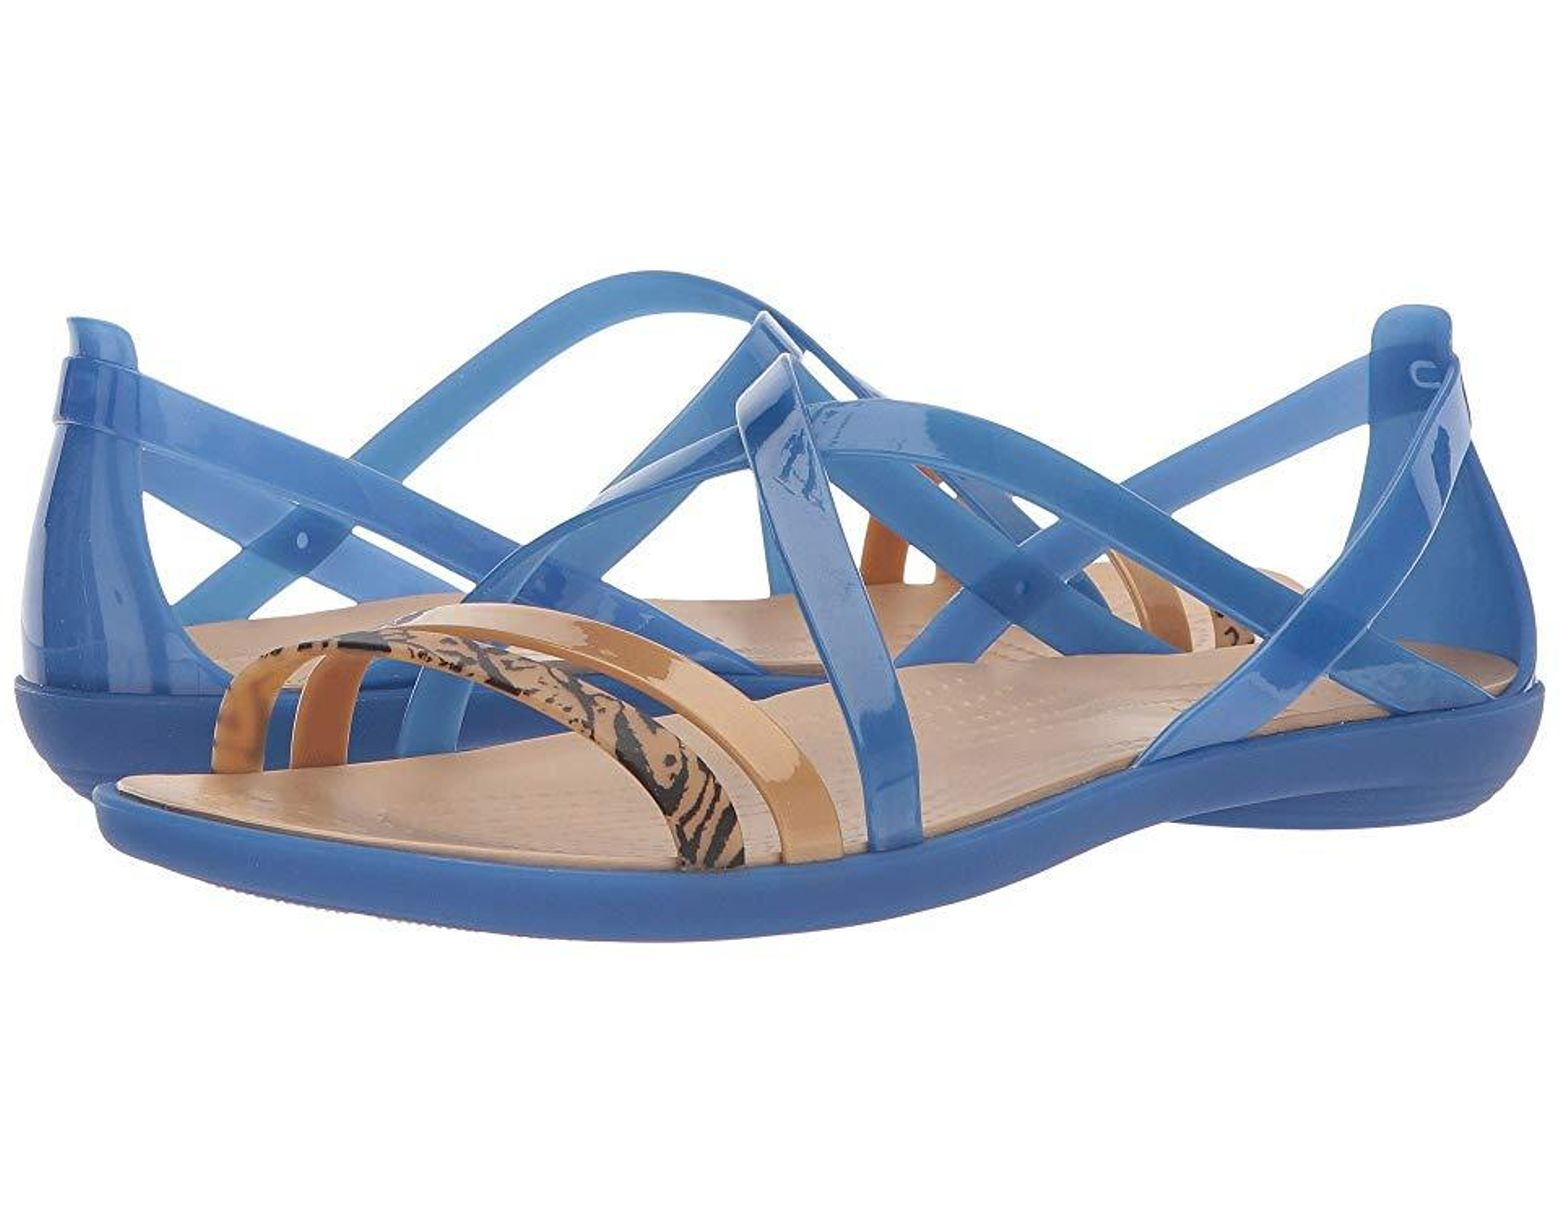 8e7f057981 Crocs™ Isabella Graphic Strappy Sandal (blue Jean/gold) Shoes in Blue -  Save 19% - Lyst